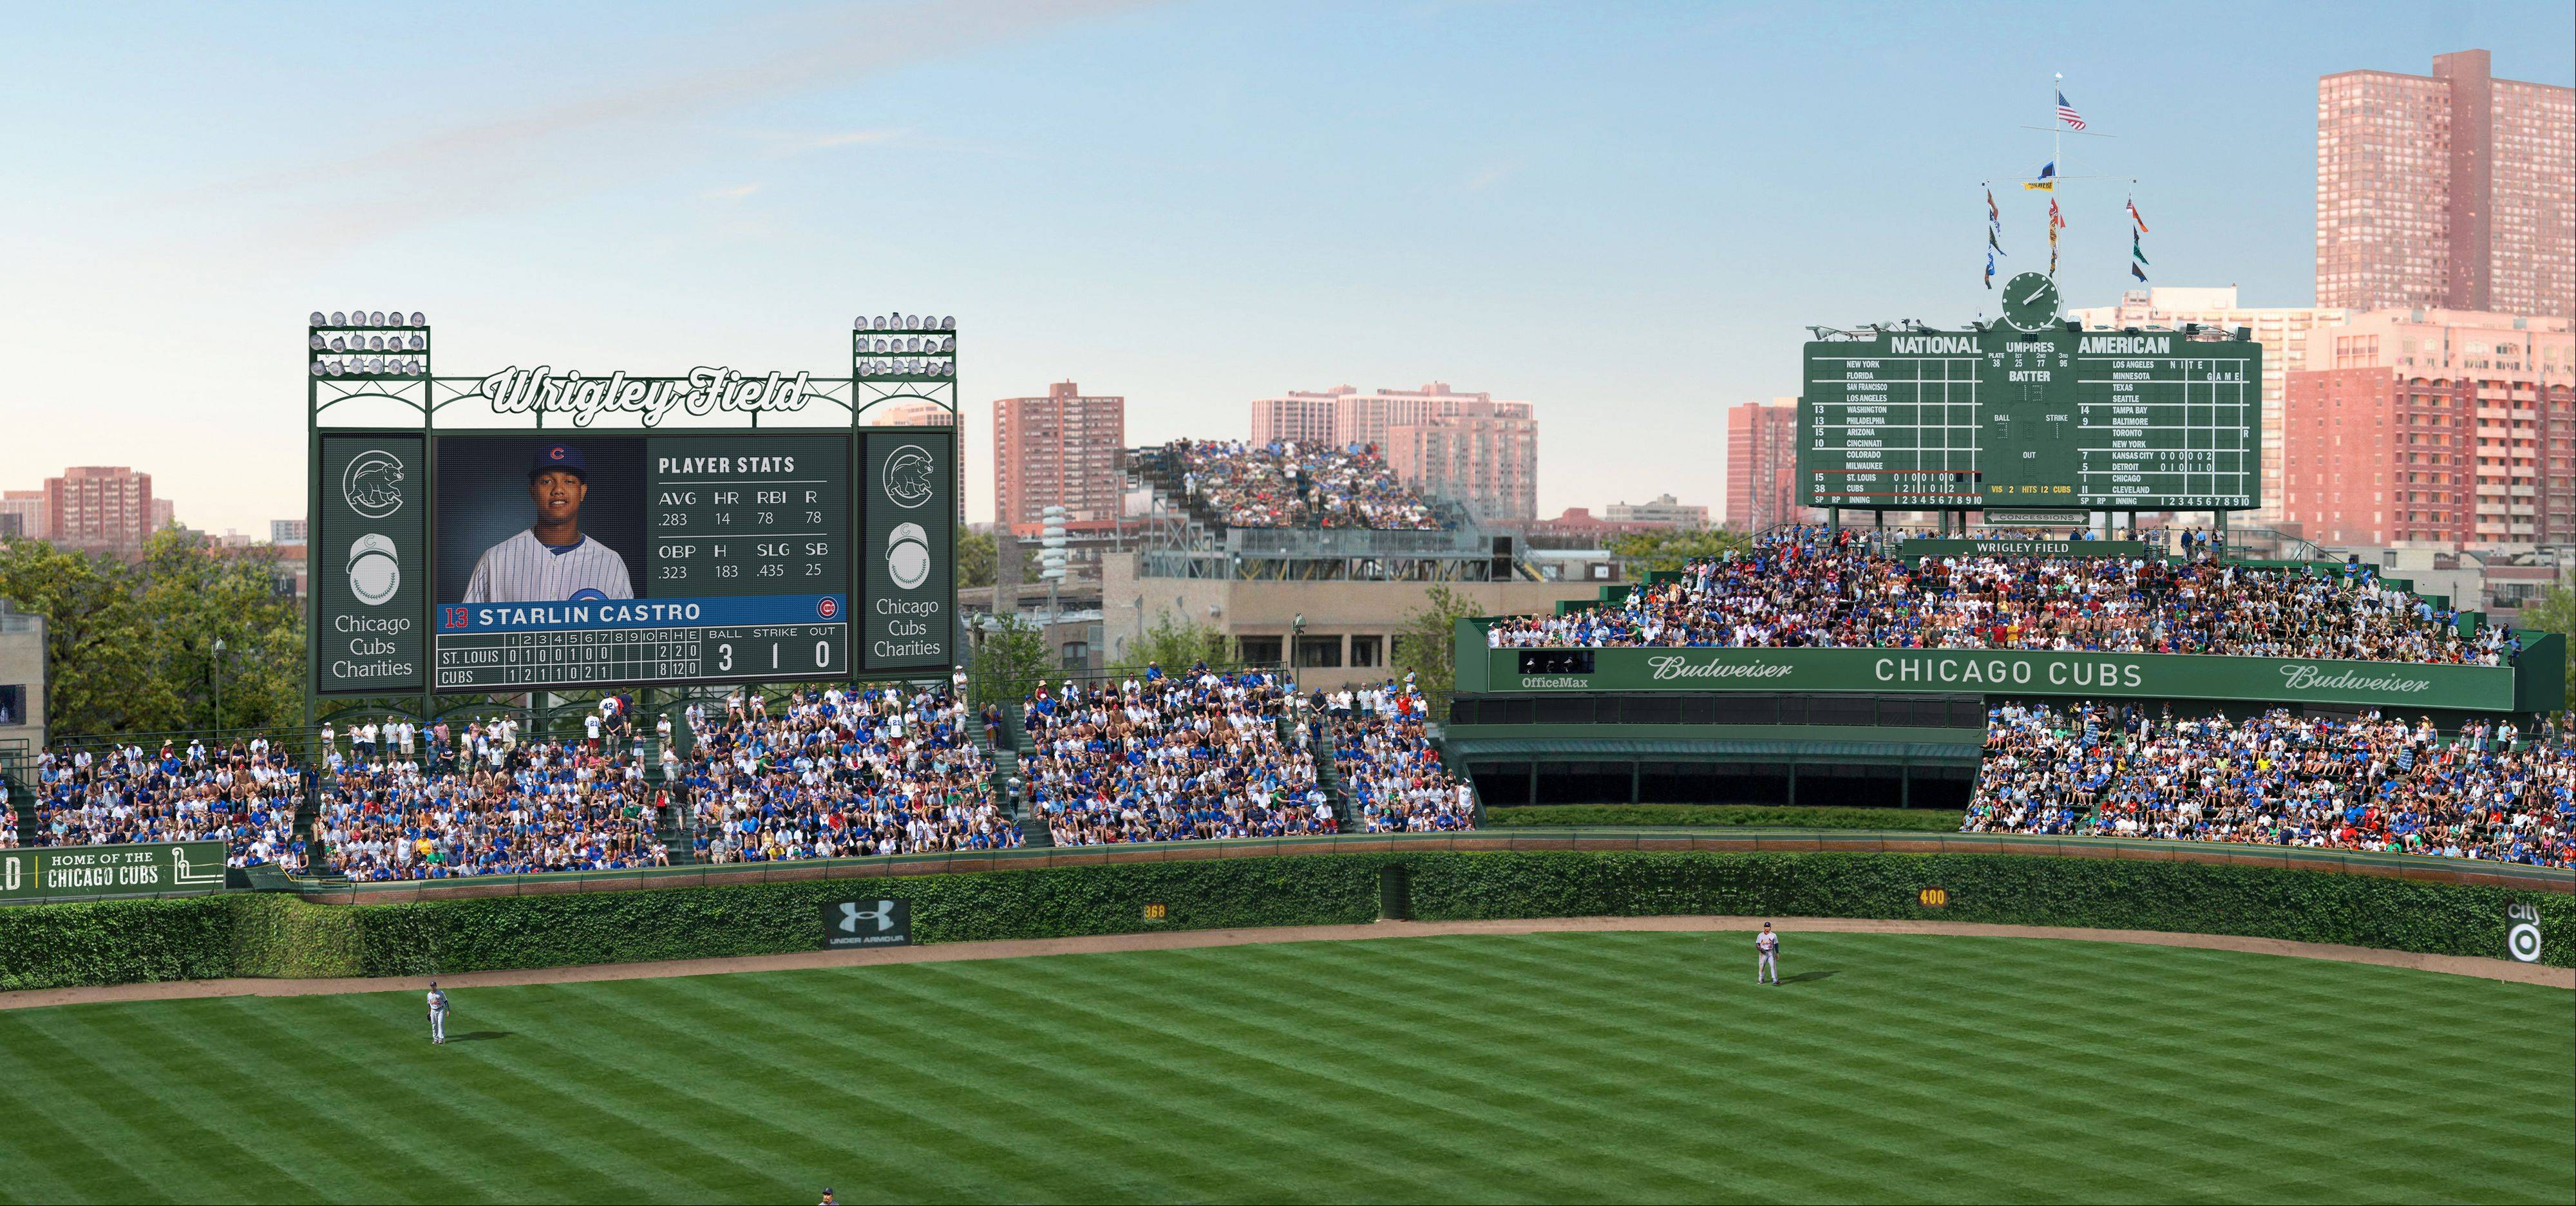 This artist rendering shows renovations planned at Wrigley Field. Part of the $500 million renovation plan for the 99-year-old stadium is to erect a 6,000-square-foot video screen over left field.